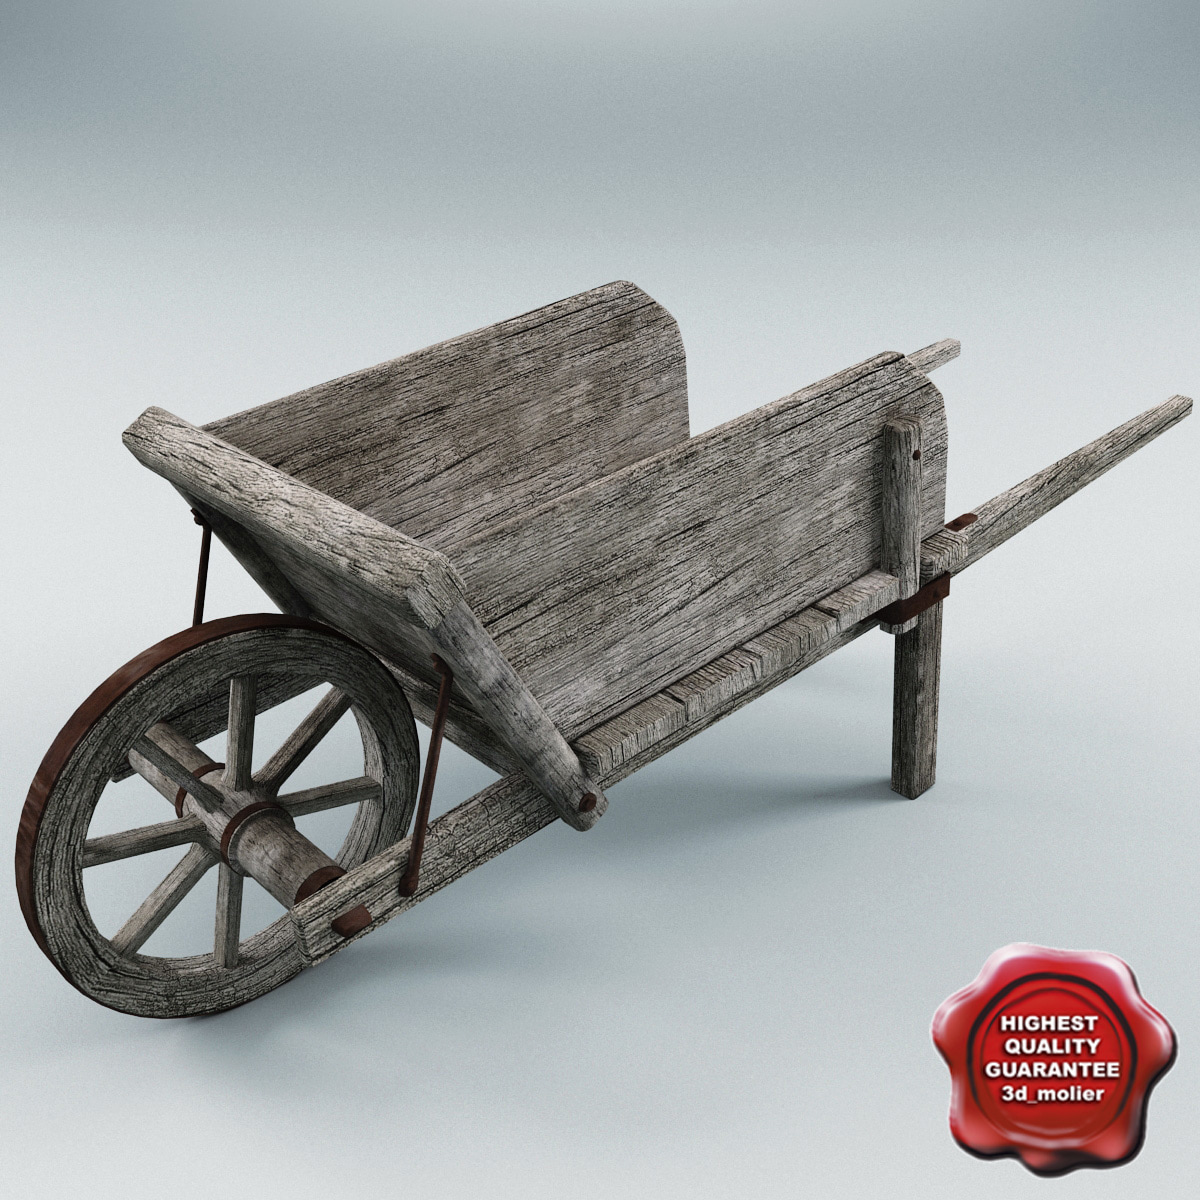 Old_Wooden_Cart_V2_00.jpg